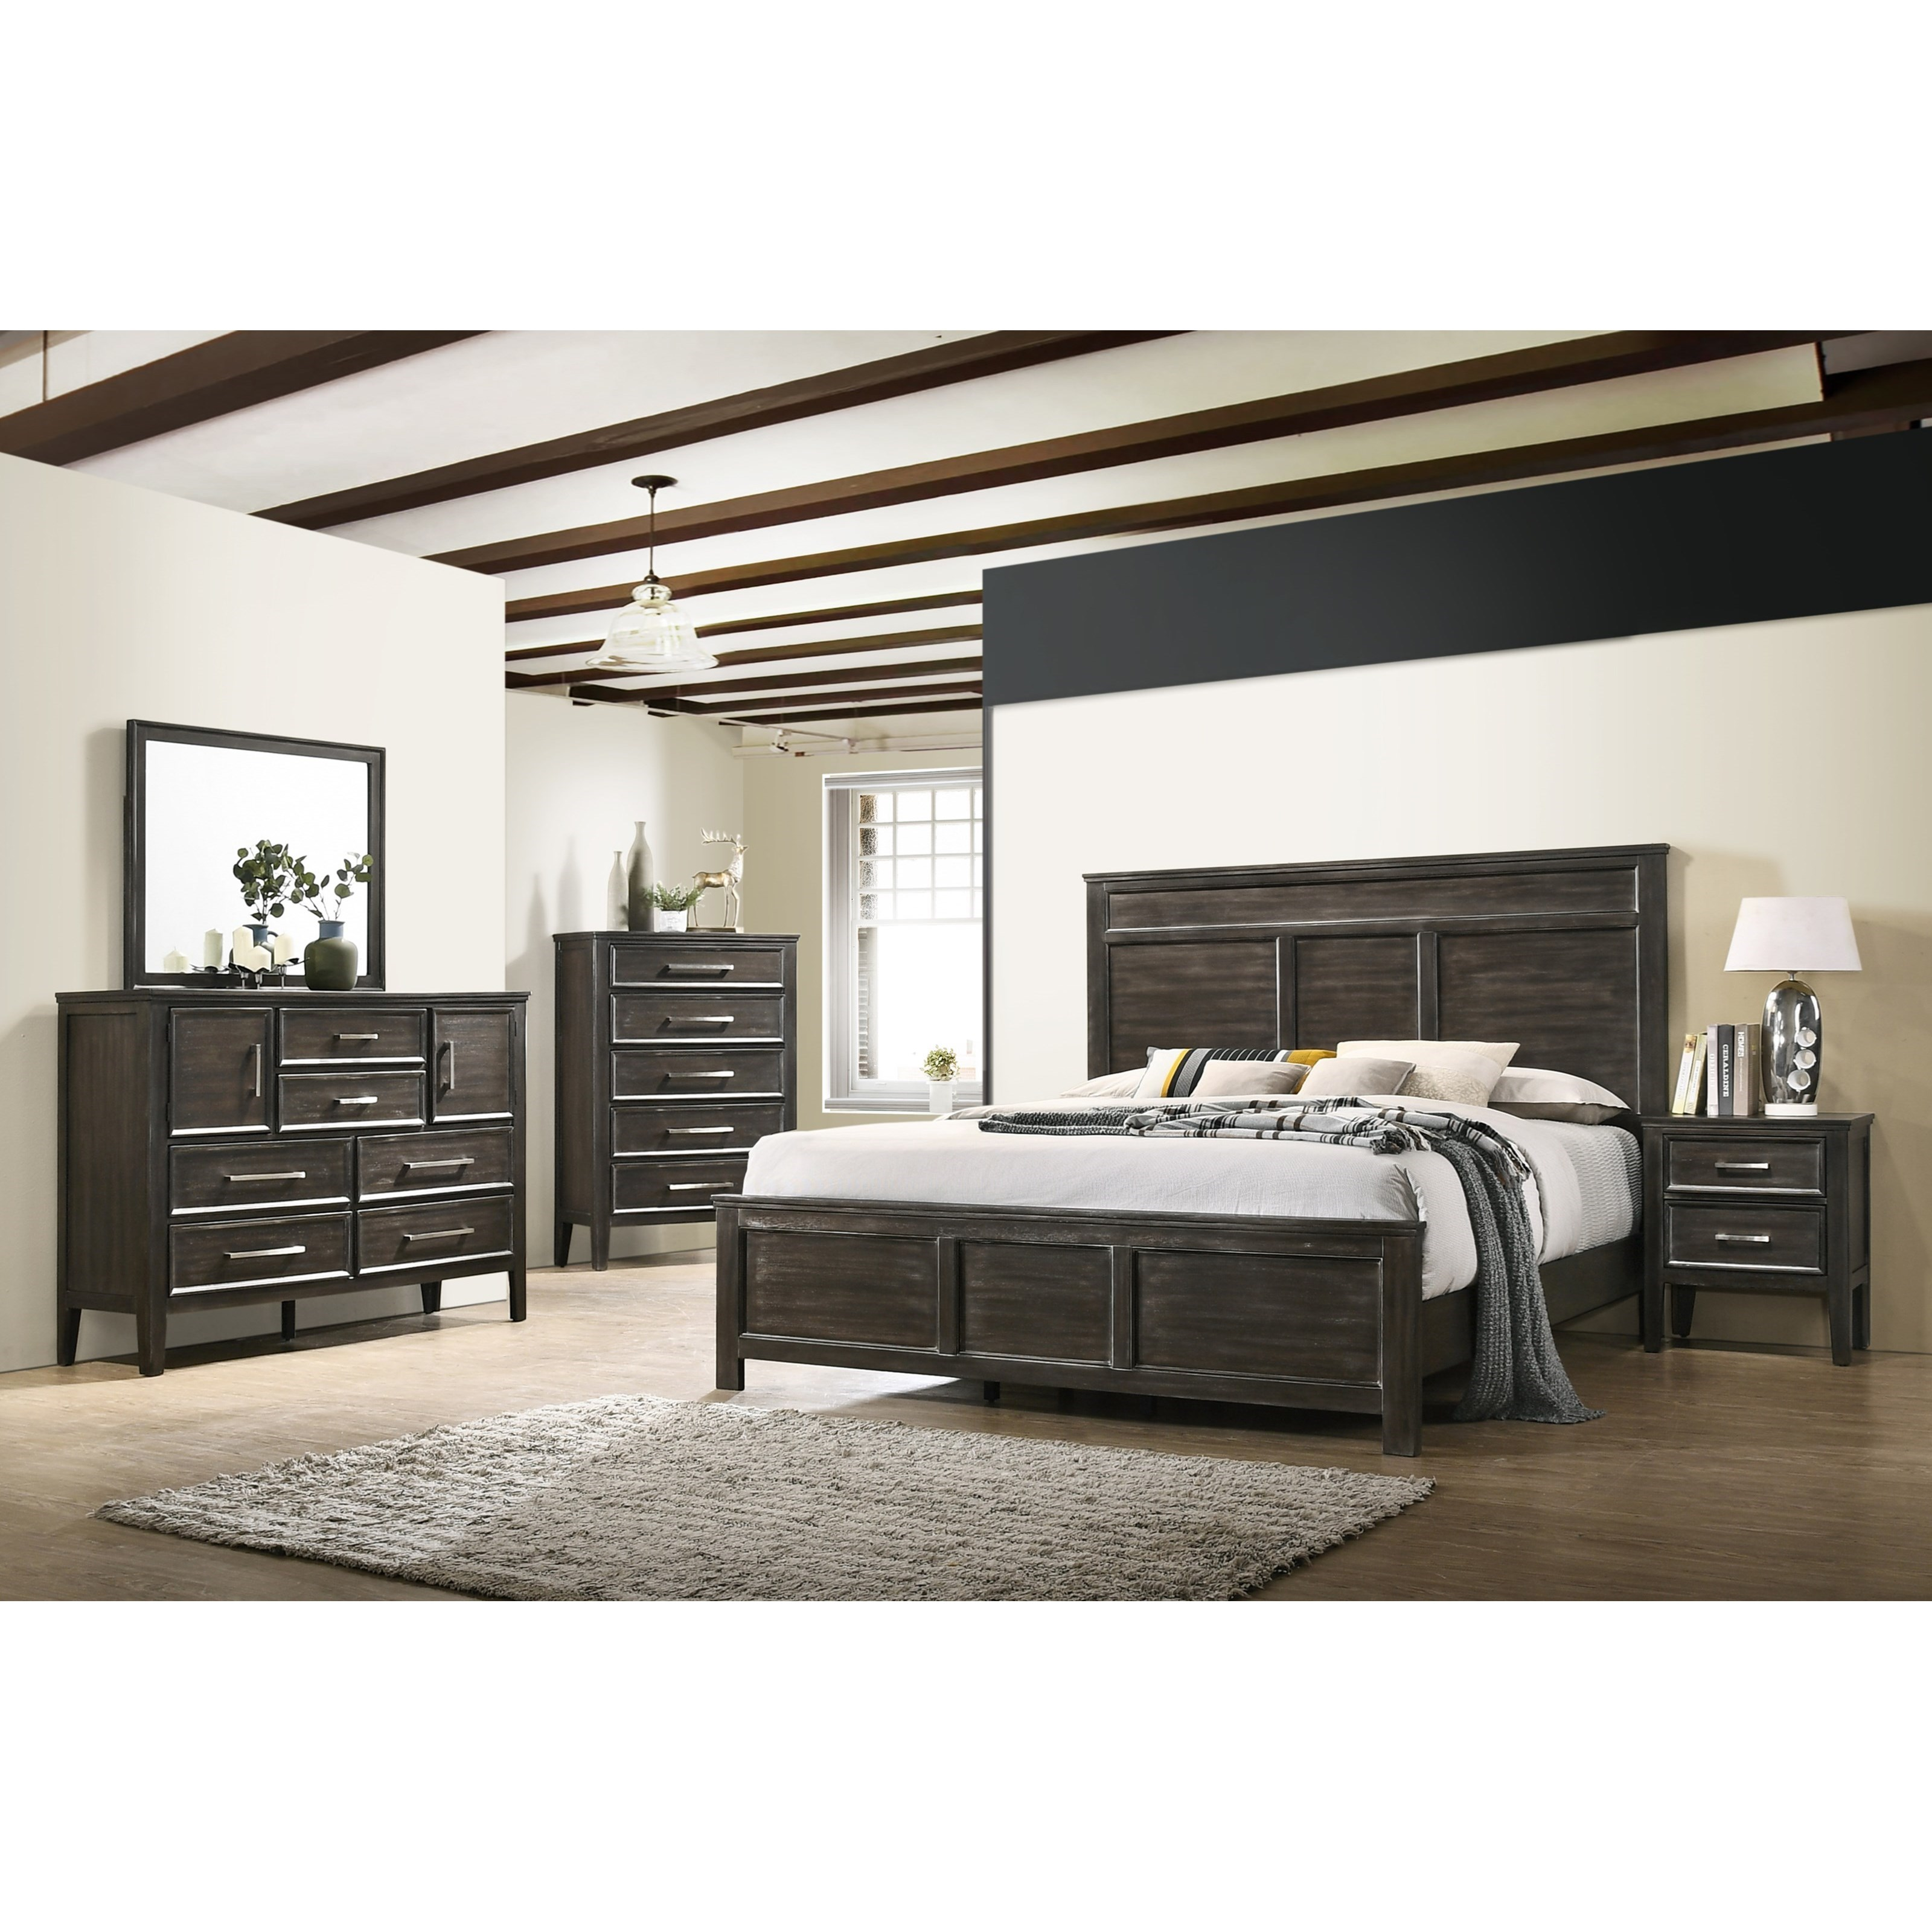 Andover California King Bedroom Group by New Classic at Rife's Home Furniture